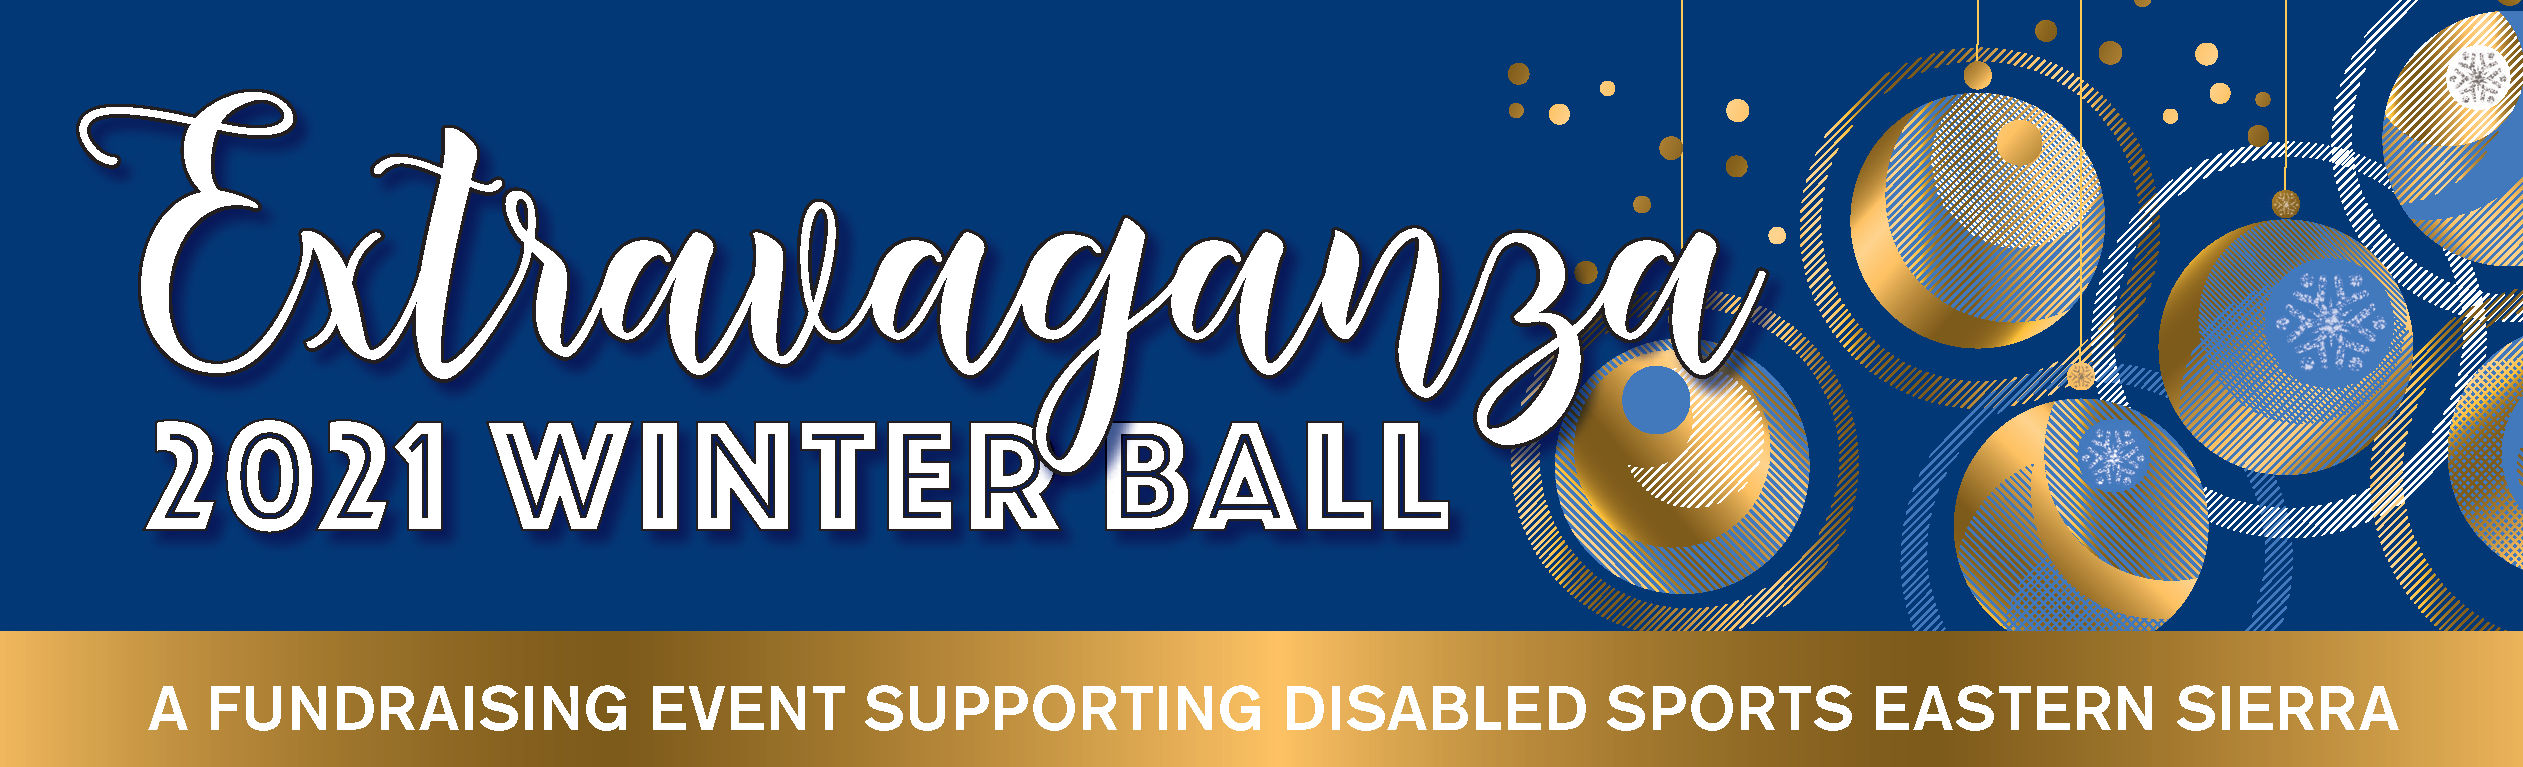 EXTRAVAGANZA 2021 Winter Ball - A fundraising event supporting Disabled Sports Eastern Sierra